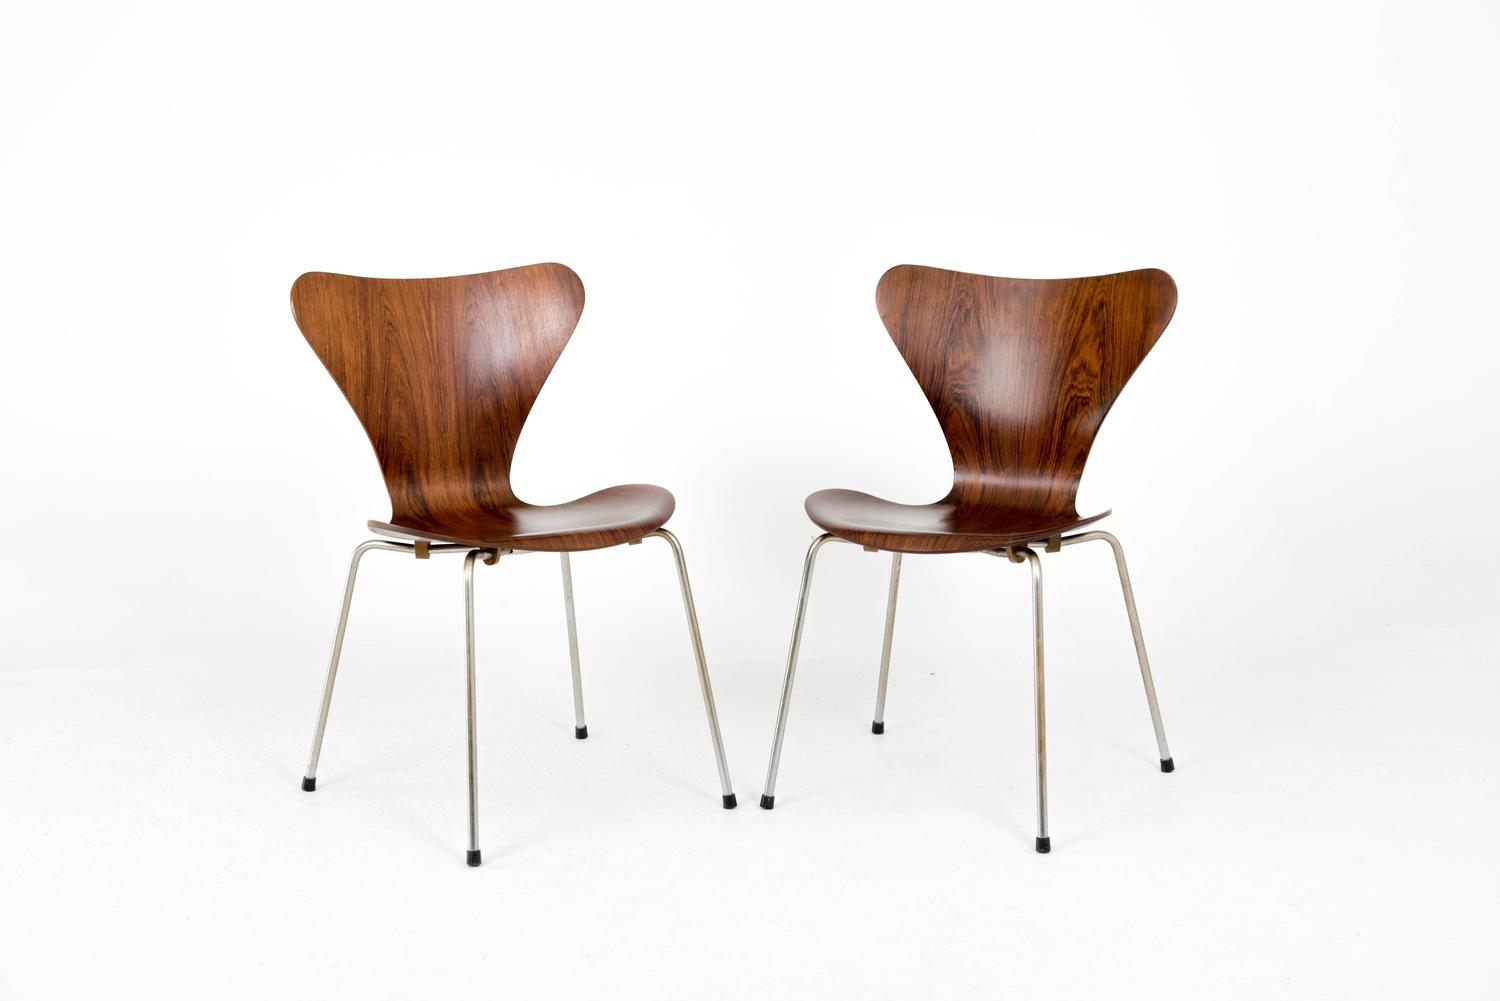 arne jacobsen set of four 3107 chairs in rosewood for sale at 1stdibs. Black Bedroom Furniture Sets. Home Design Ideas